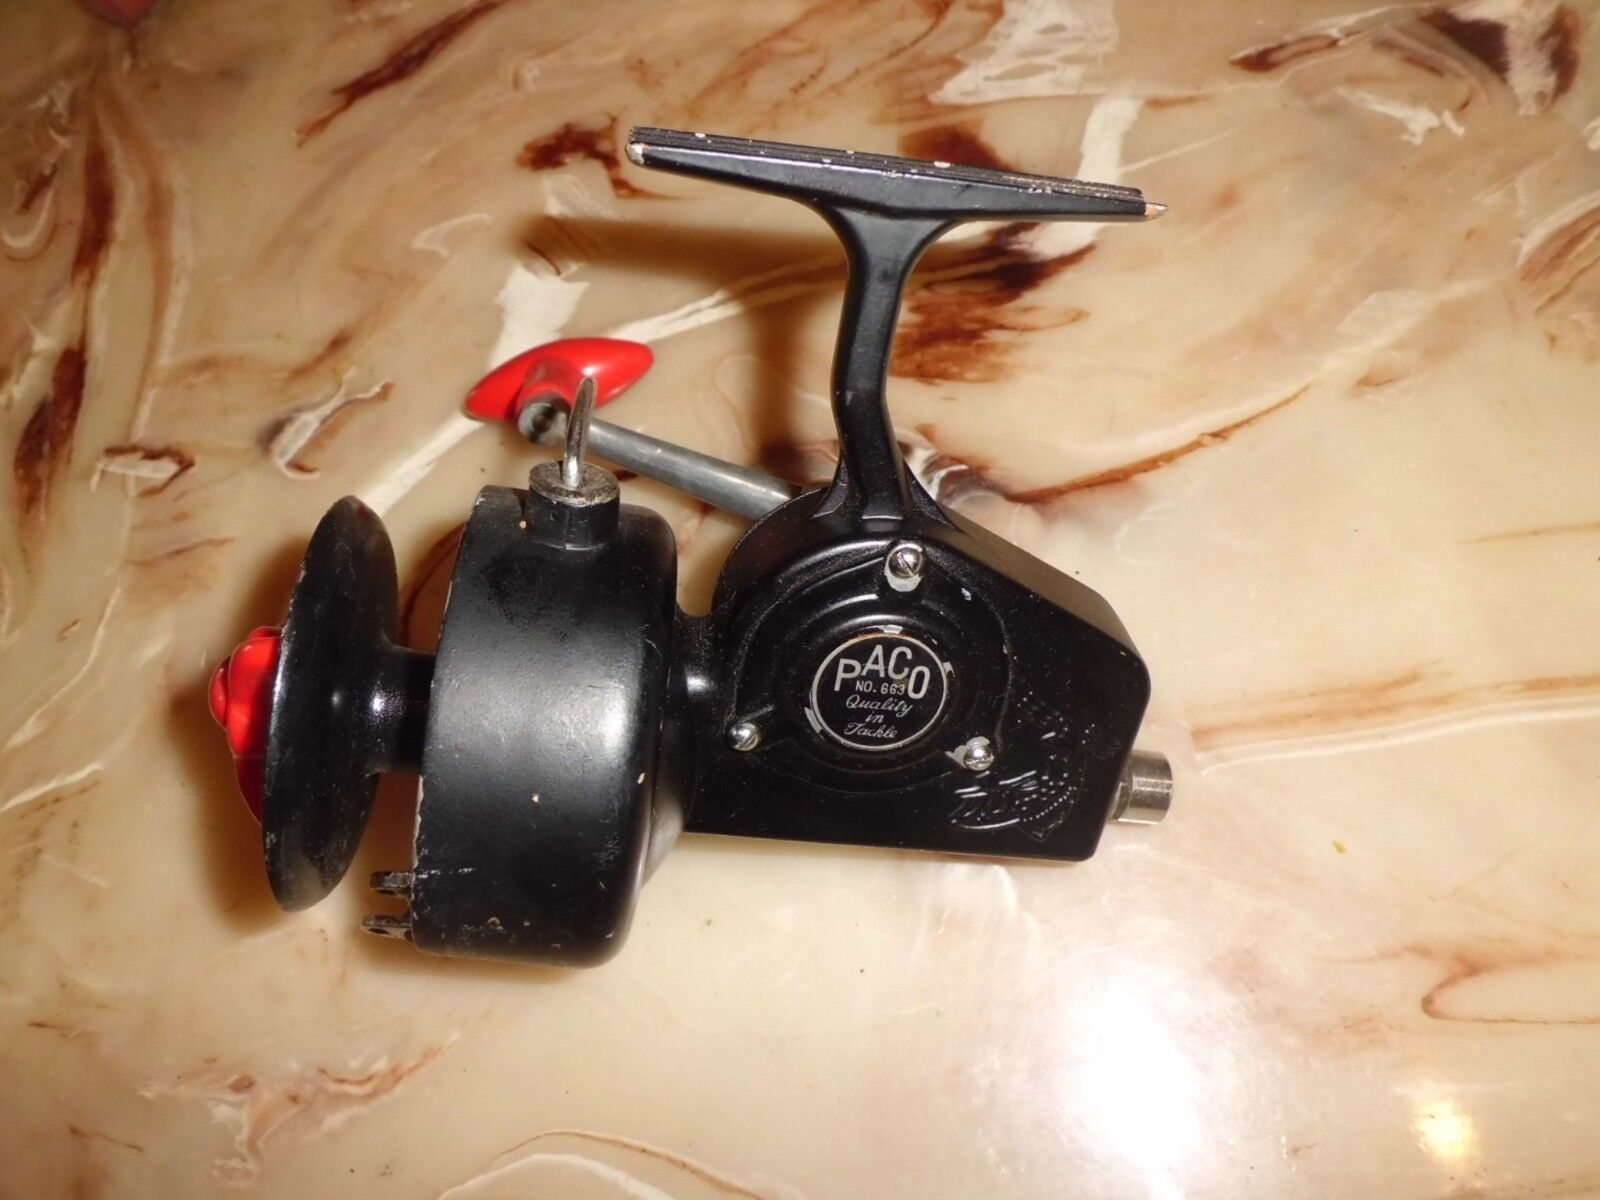 Vintage PACO 663 Surf Boat Spinning Reel made in Japan